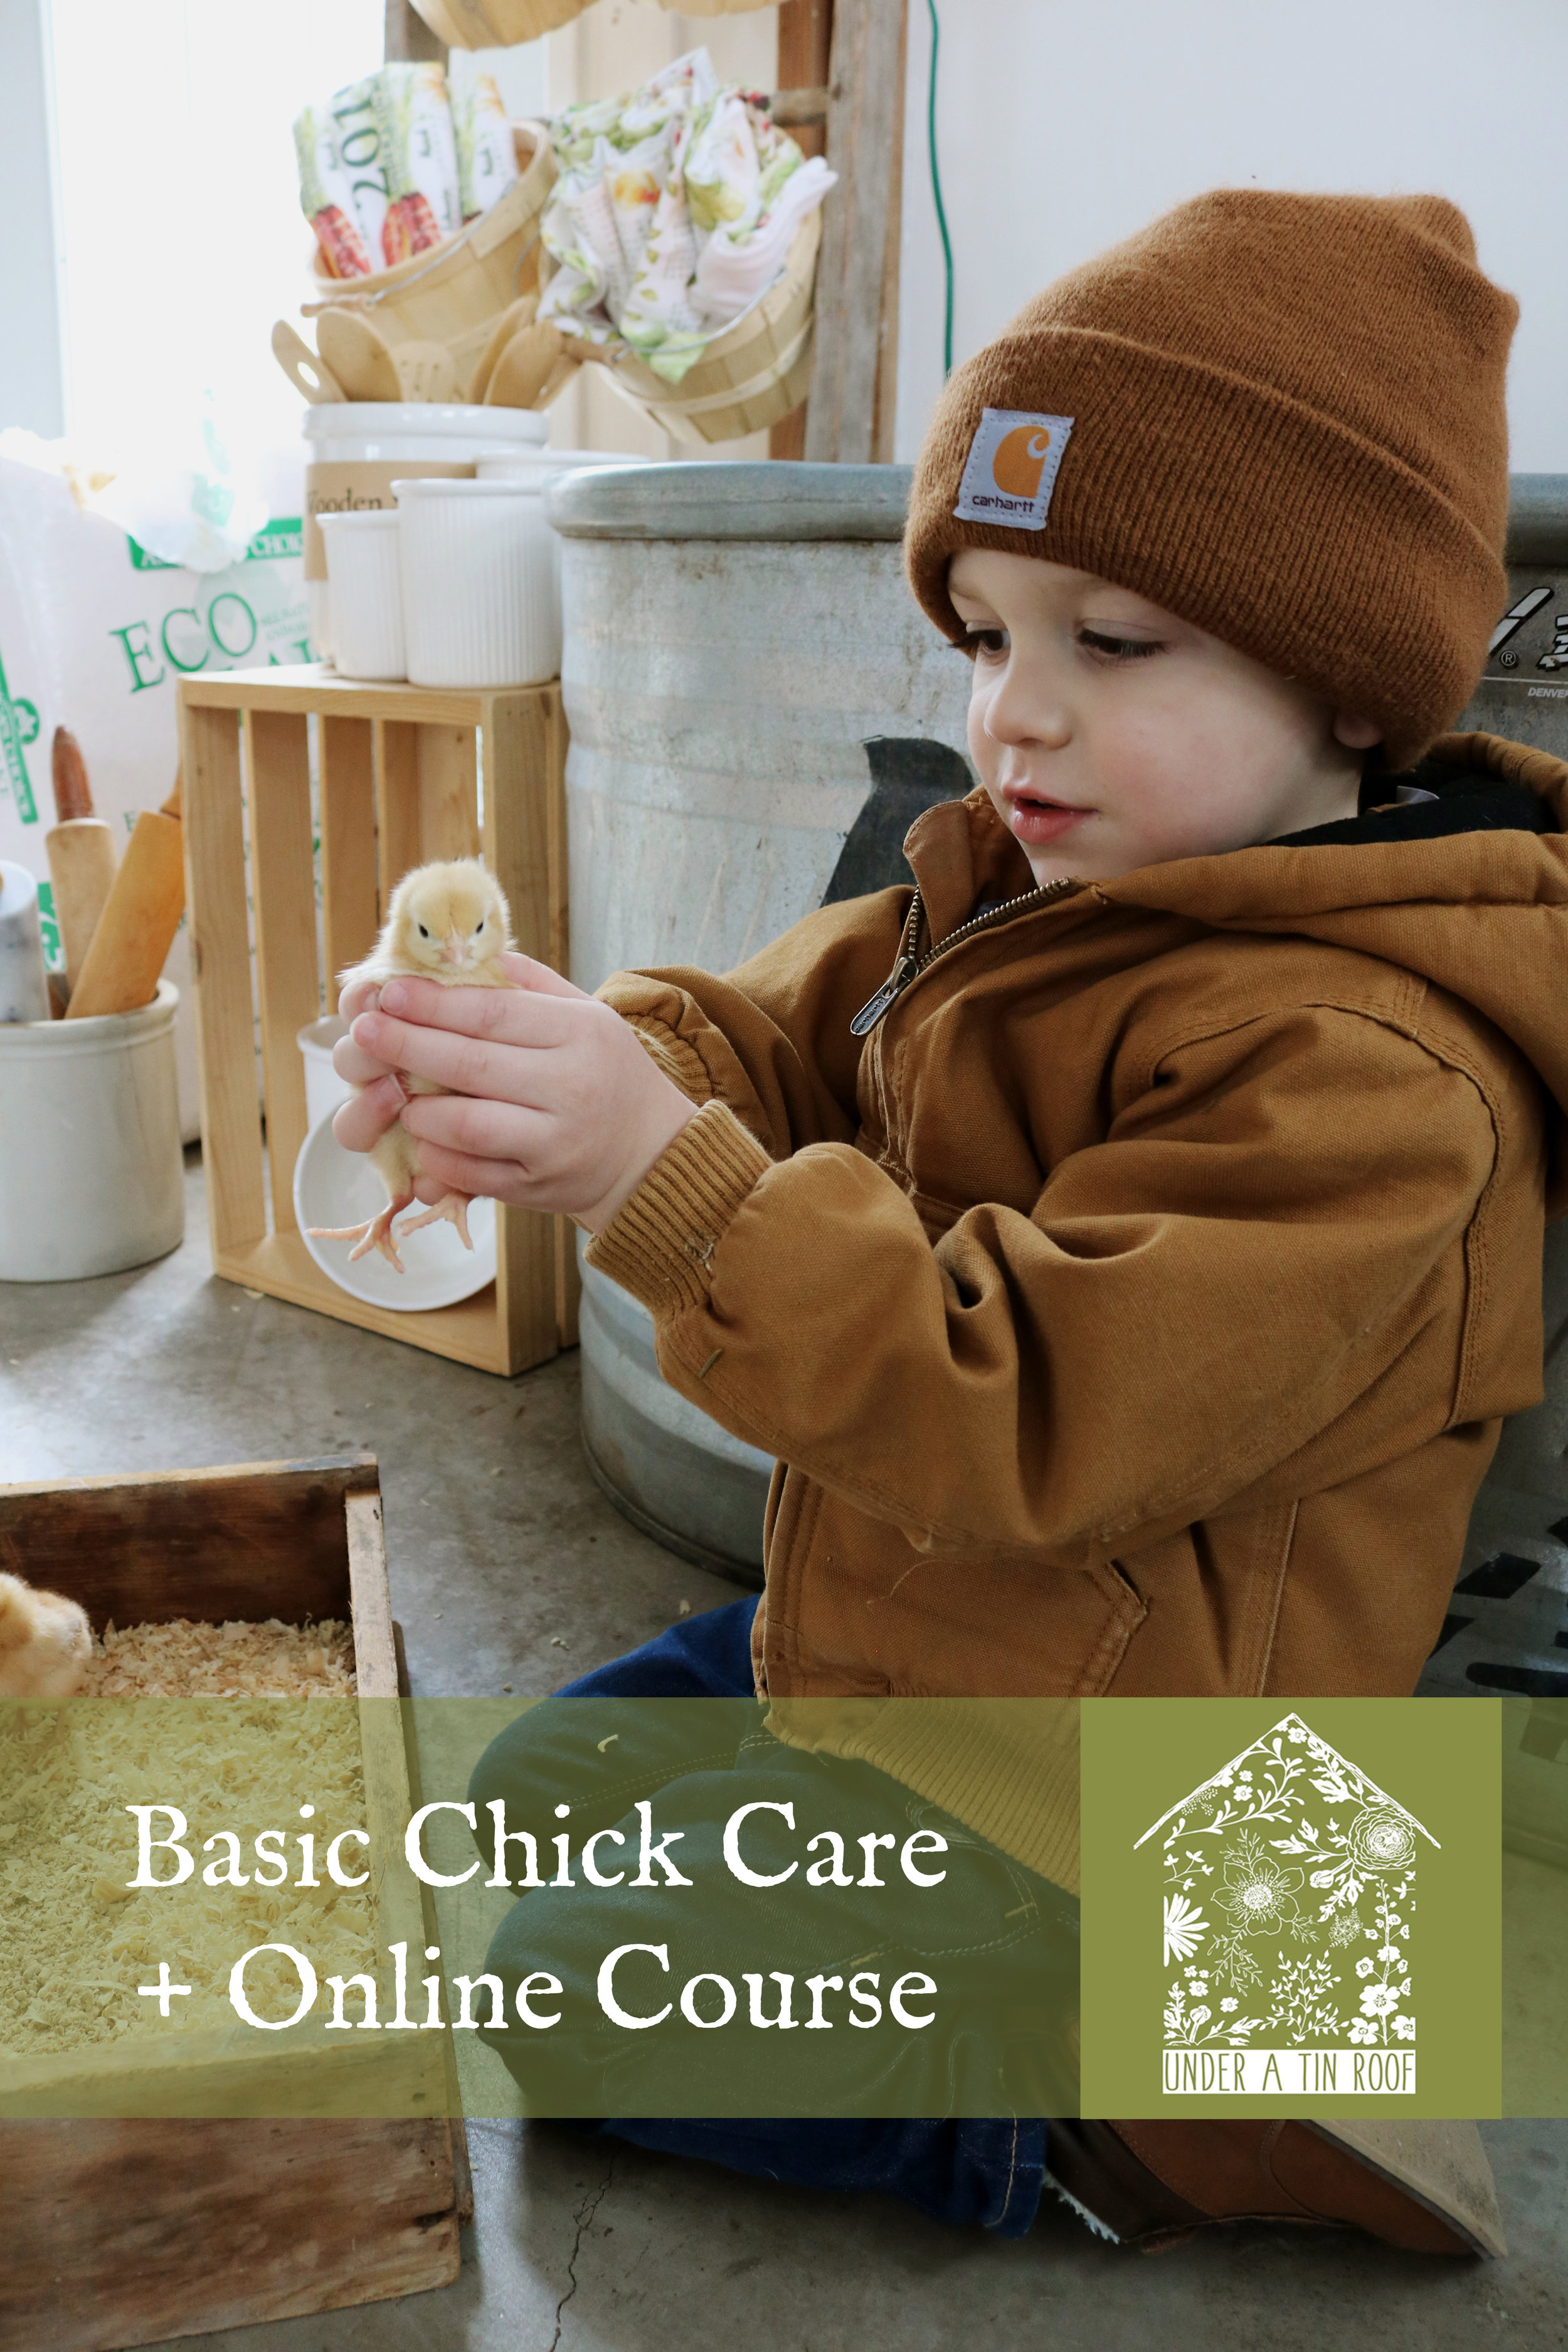 Basic Chick Care - Under A Tin Roof Blog